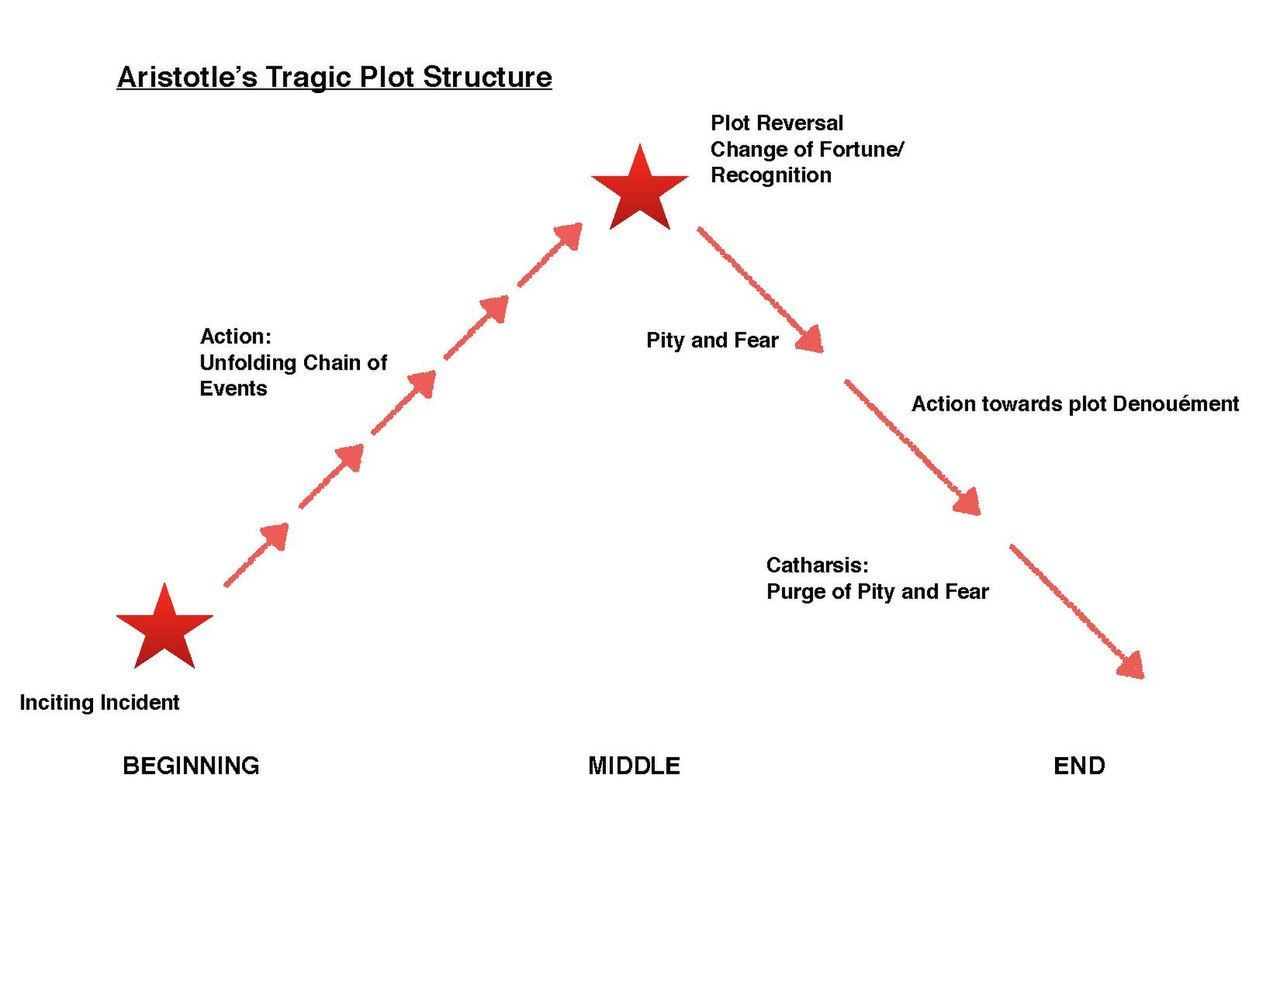 a literary analysis of the physics by aristotle Part 1 sets up the hylomorphic analysis by aiming to demonstrate aristotle's indebtedness to plato's account of time as the imposition of the appropriate form (number) upon the relevant raw material (motion.